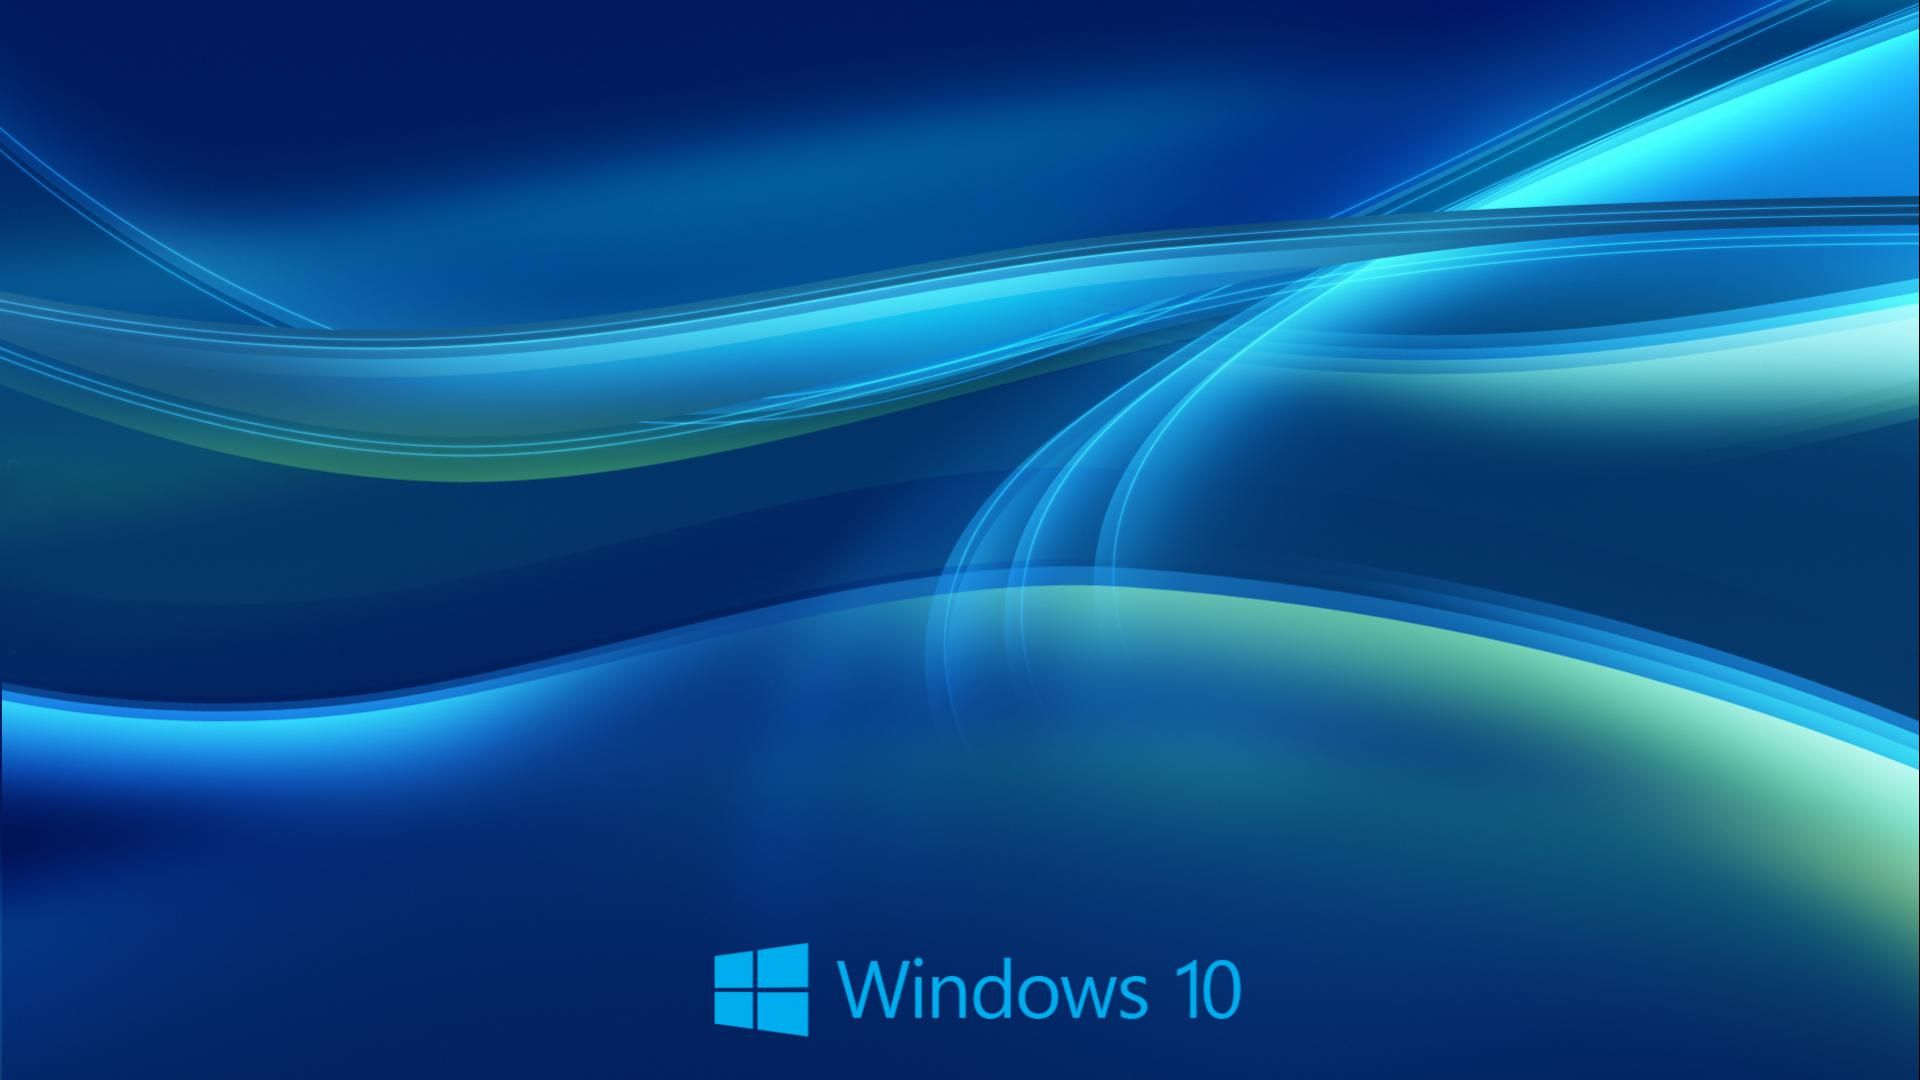 Windows 10 Hd Wallpaper 1920x1080 Wallpapersafari Wallpaper